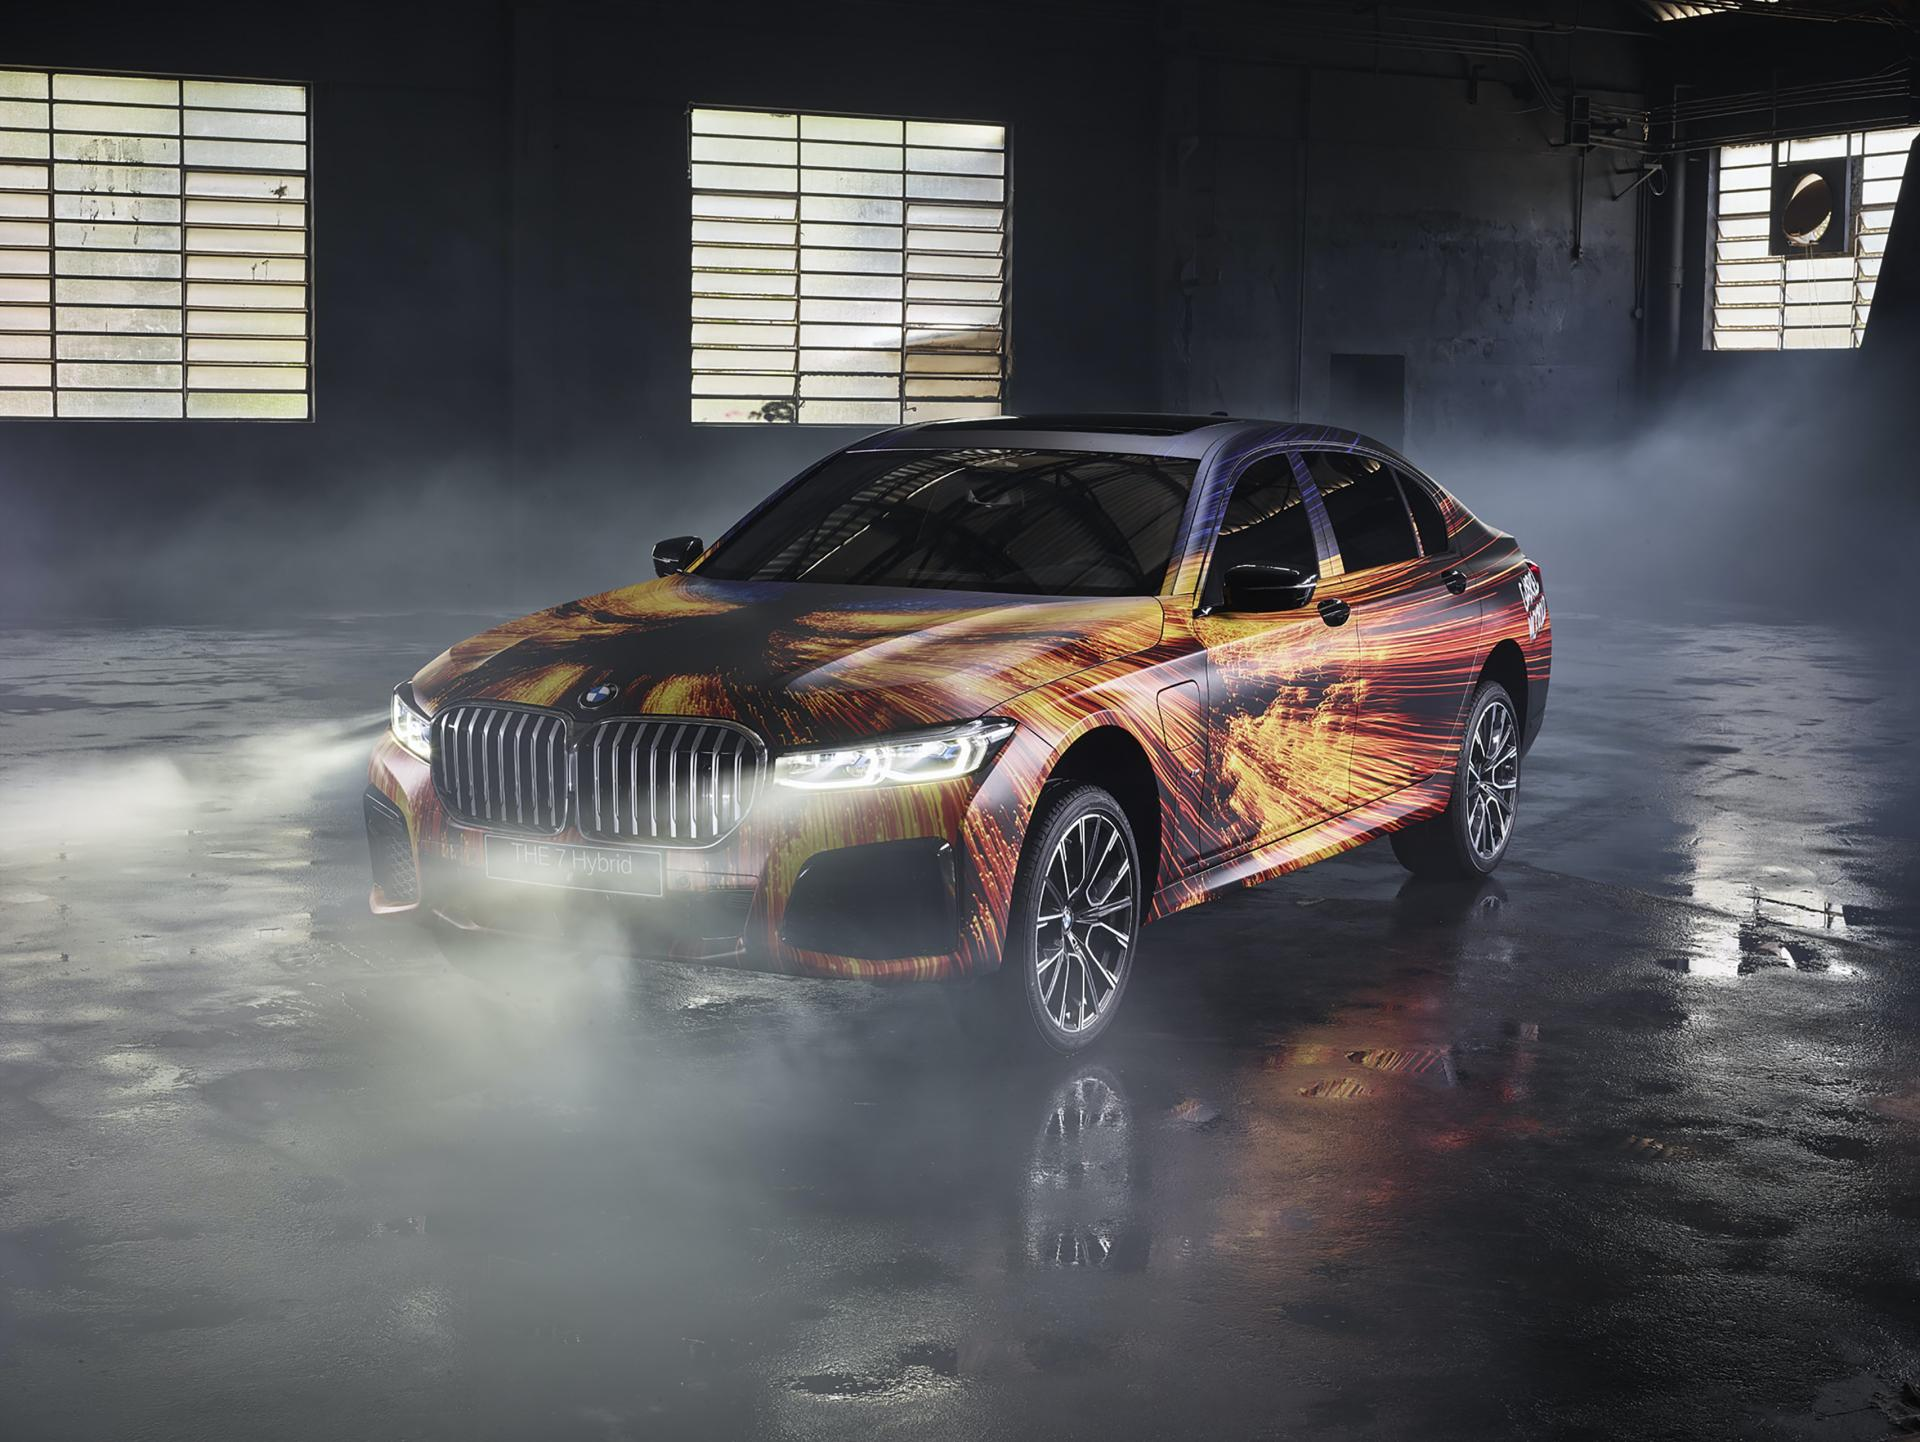 BMW-7-Series-745Le-M-Sport-Gabriel-Wickbold-Car-Art-2